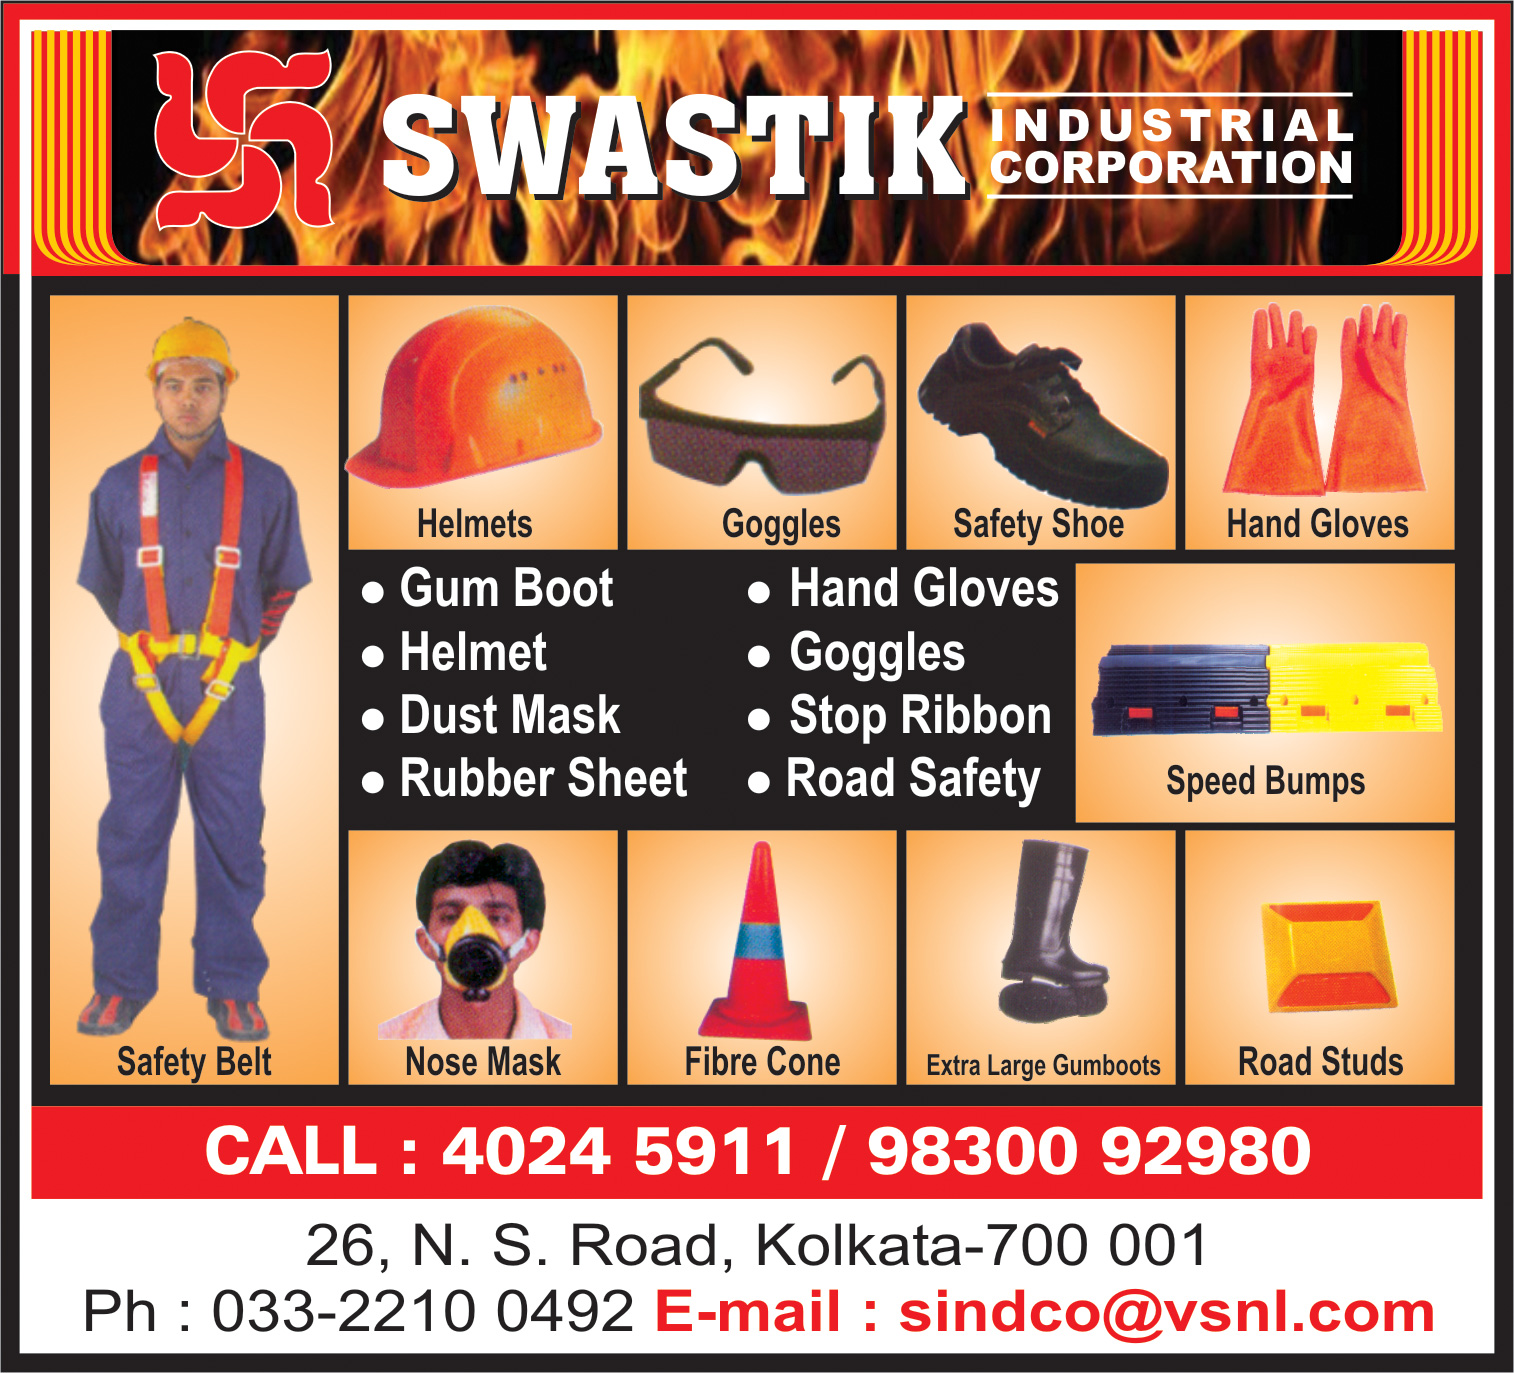 Safety Equipment and Clothing, SWASTIK INDUSTRIAL CORPORATION, Kolkata,  Yellow Pages, Kolkata, West Bengal